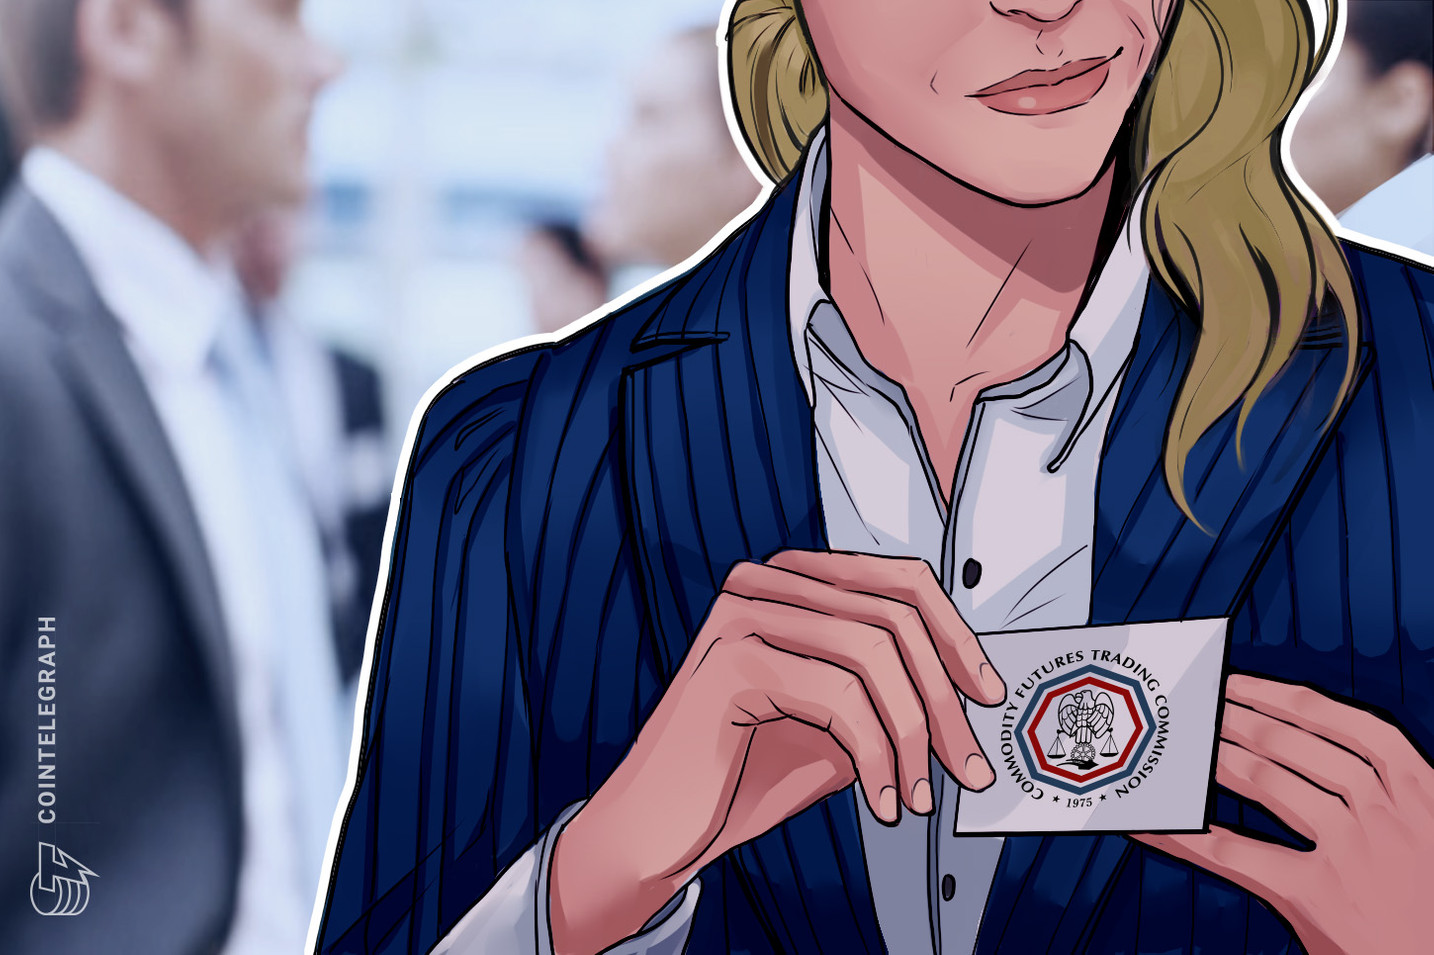 CFTC Appoints Former Coinbase Exec as Director of Market Oversight